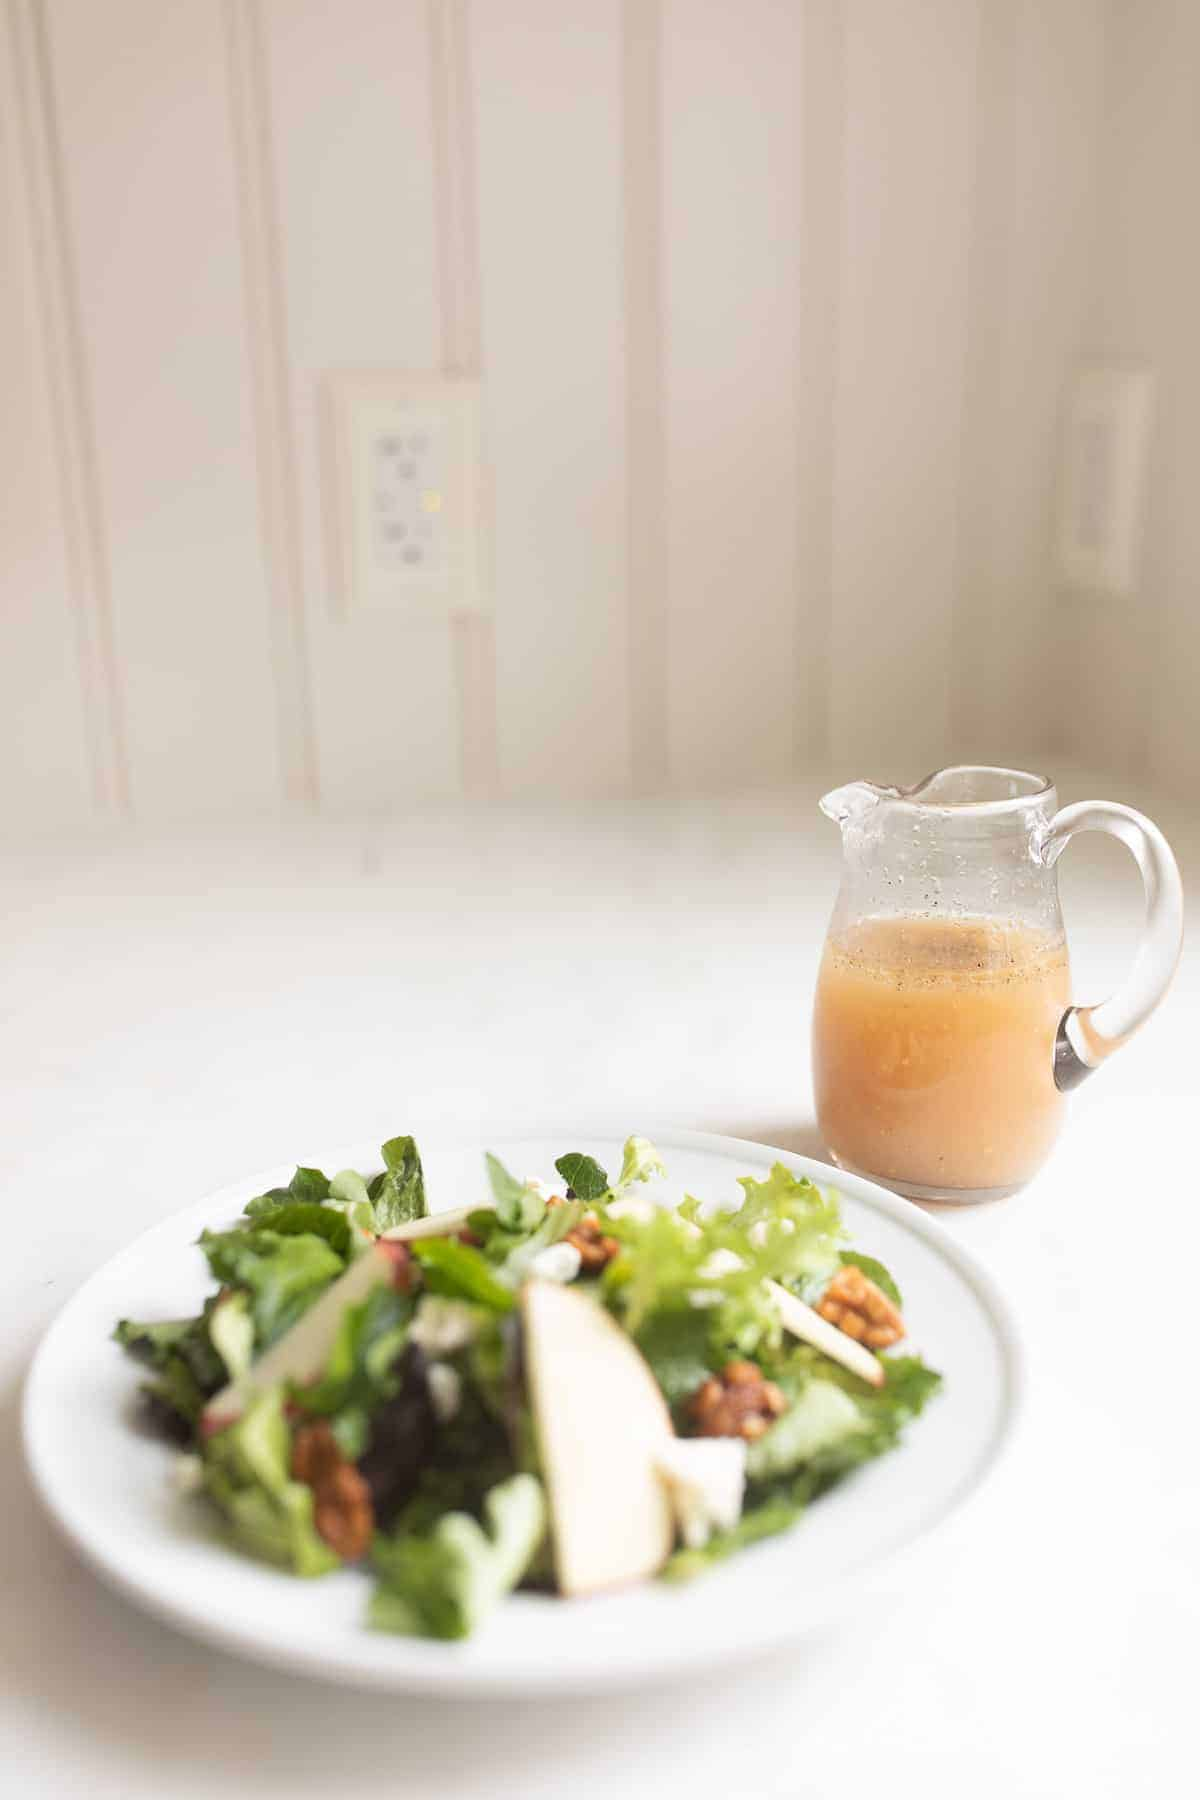 salad with apples next to apple cider vinaigrette in small clear glass pitcher